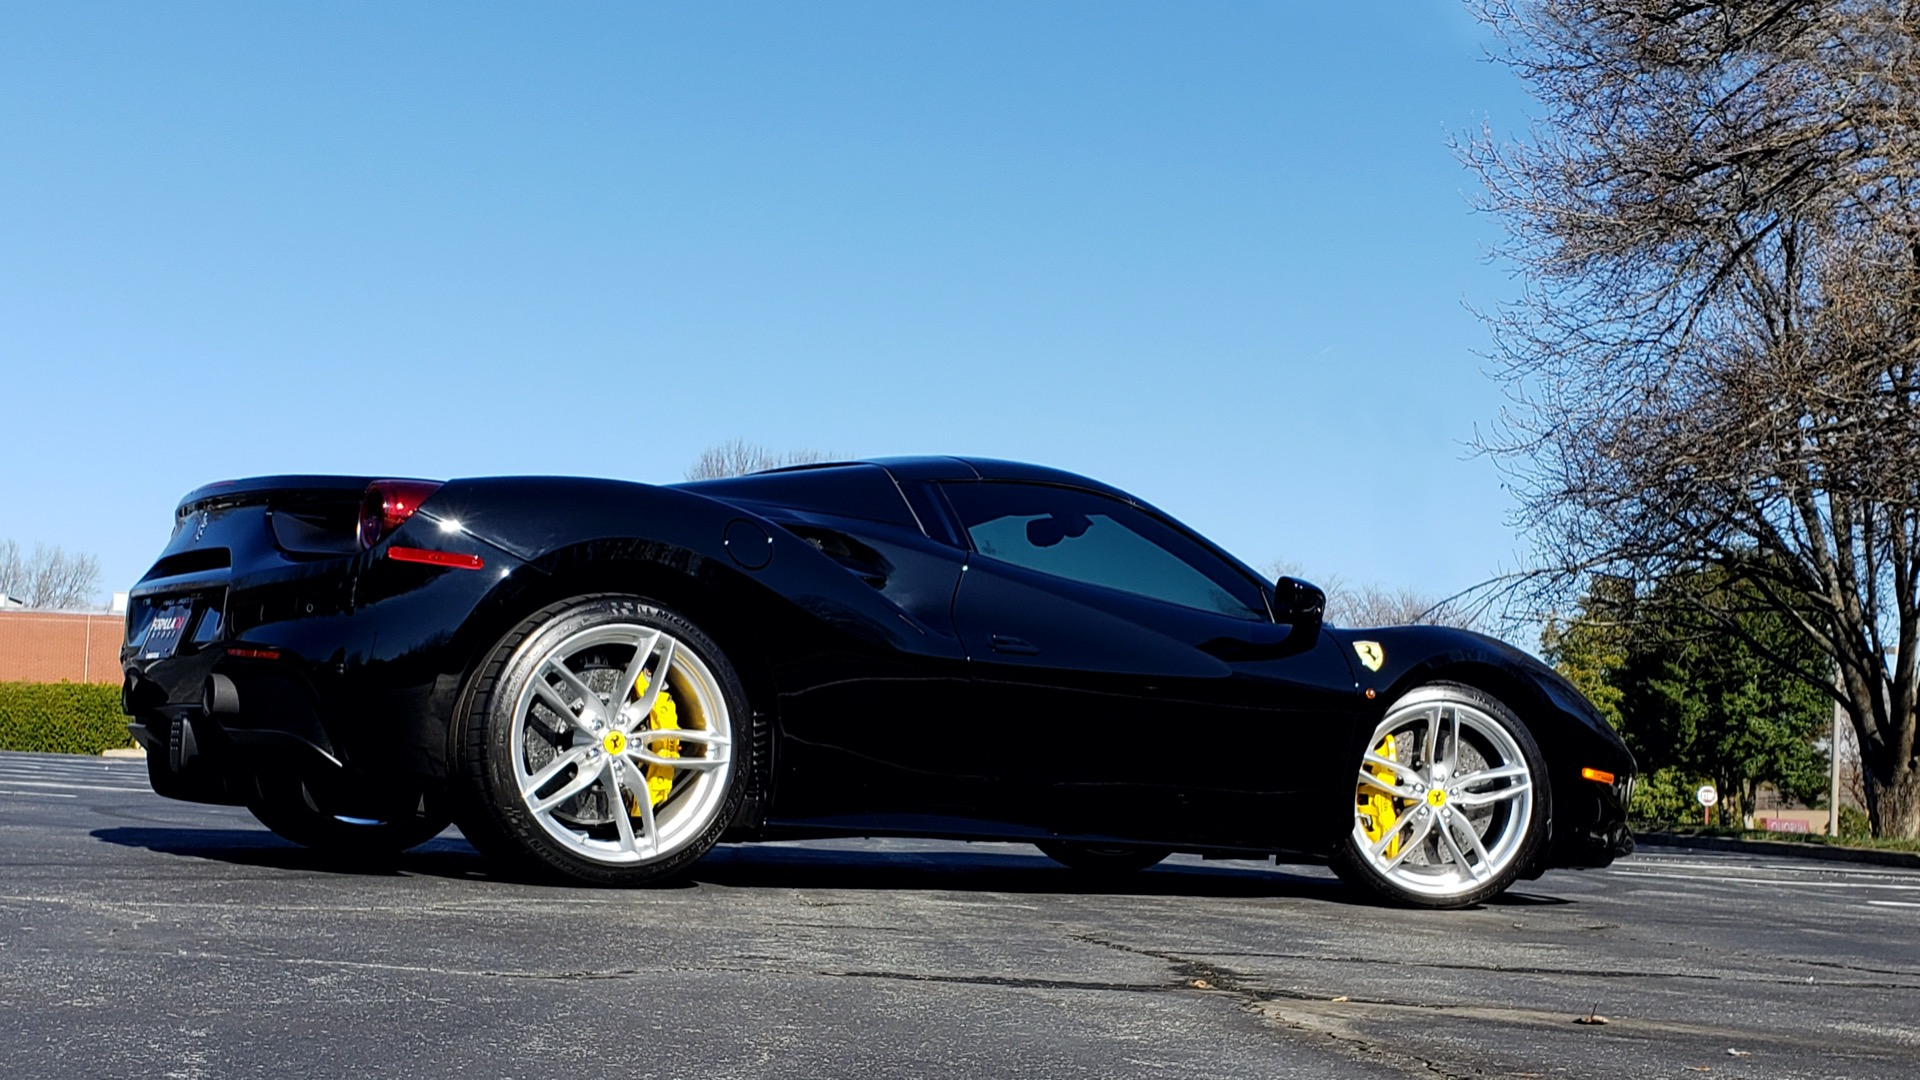 Used 2017 Ferrari 488 Spider SUSP LFT / JBL SND / SPRT EXH / F1 TRANS for sale $315,000 at Formula Imports in Charlotte NC 28227 15